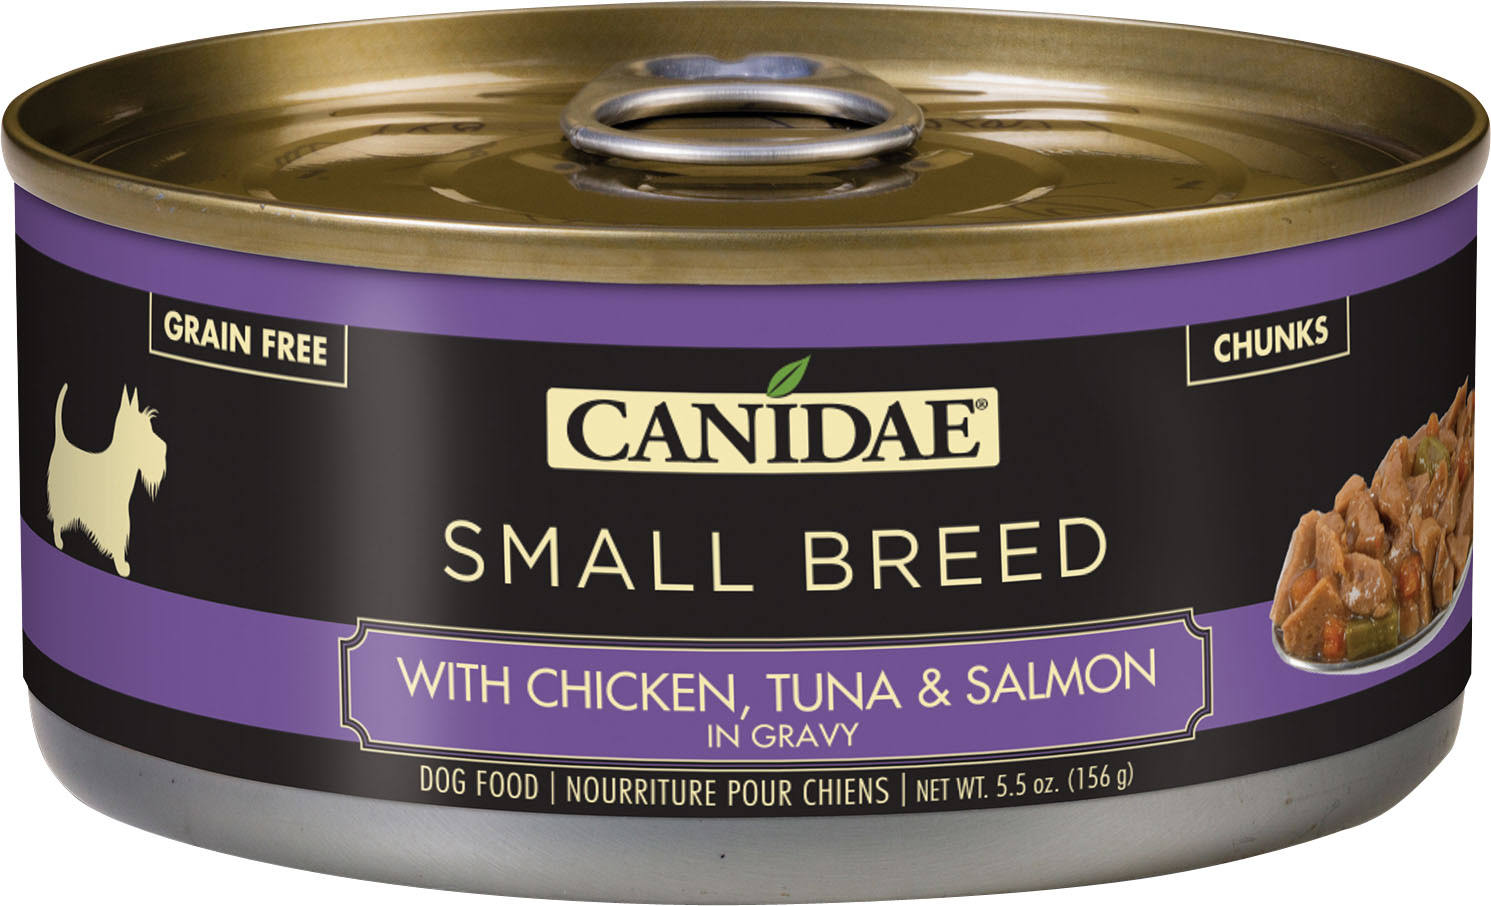 Canidae Pure Small Breed Stew Wet Dog Food - Natural, Grain Free Size: 5.5 oz, copper/green/gum, Chicken, Tuna & Salmon, Adult